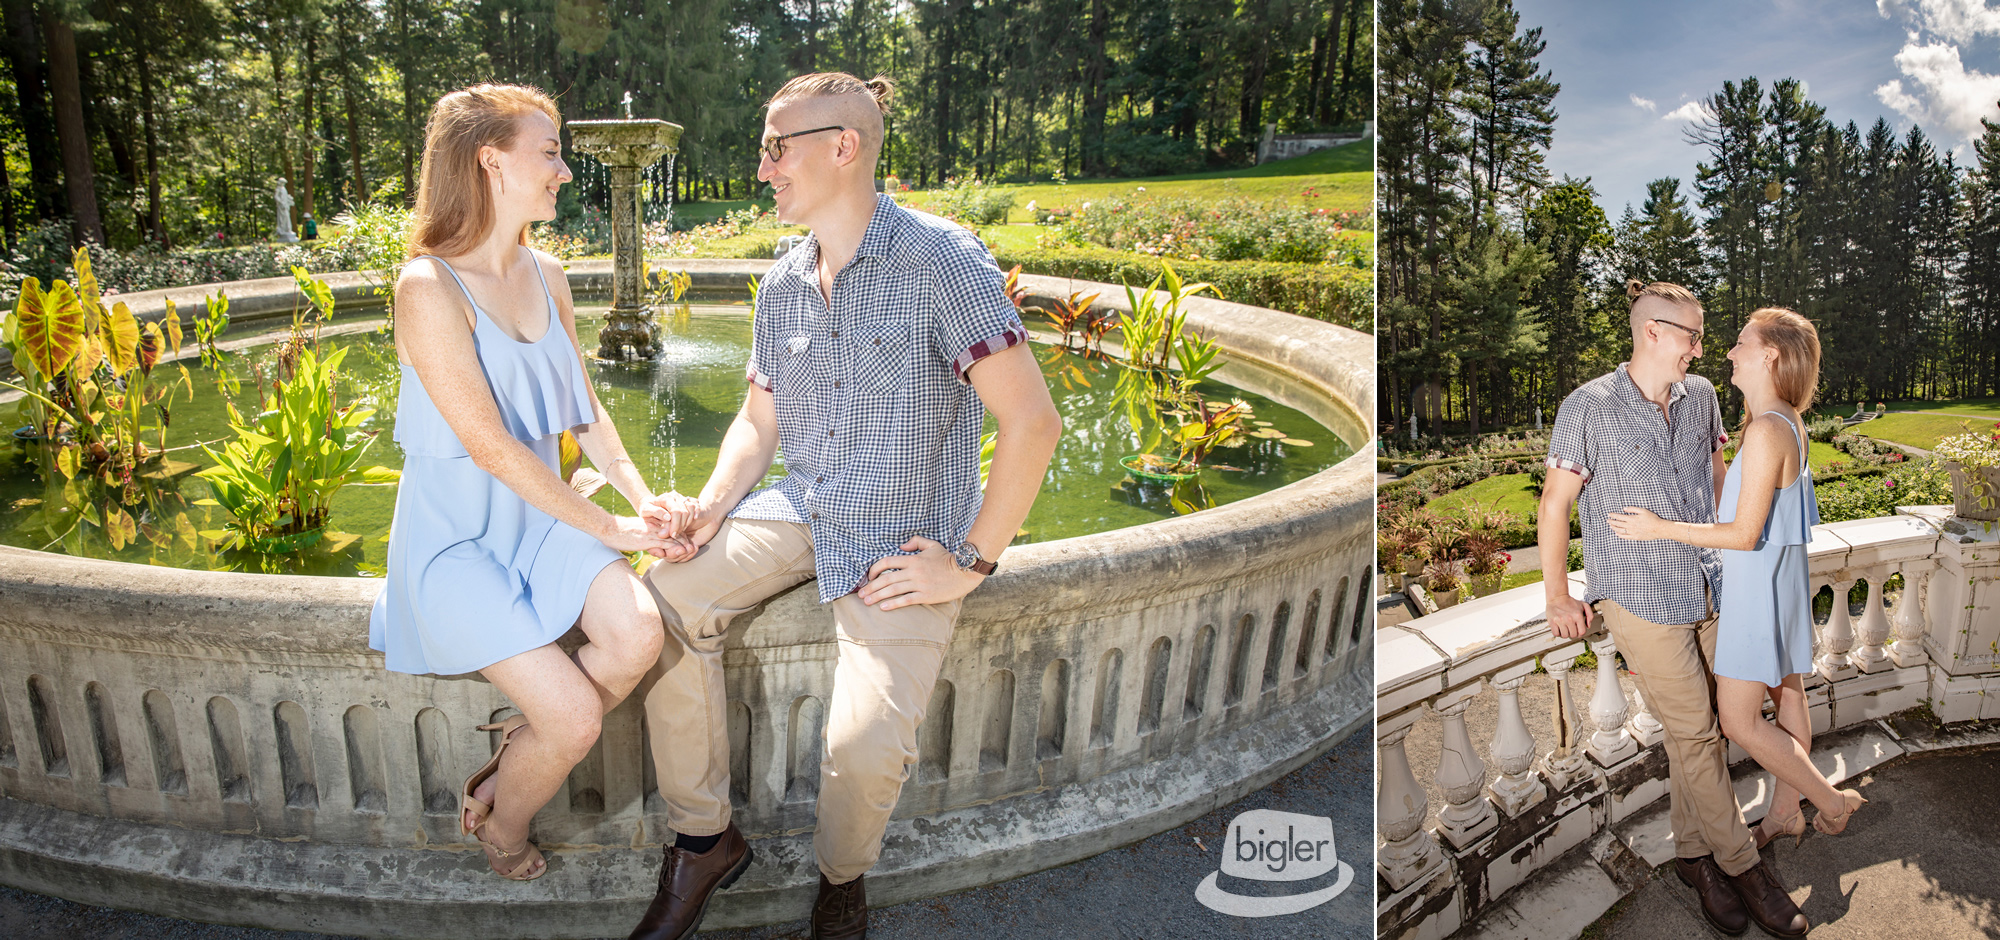 20180904_-_07_-_Carolyn_and_Matt_Yaddo_Gardens_EShoot